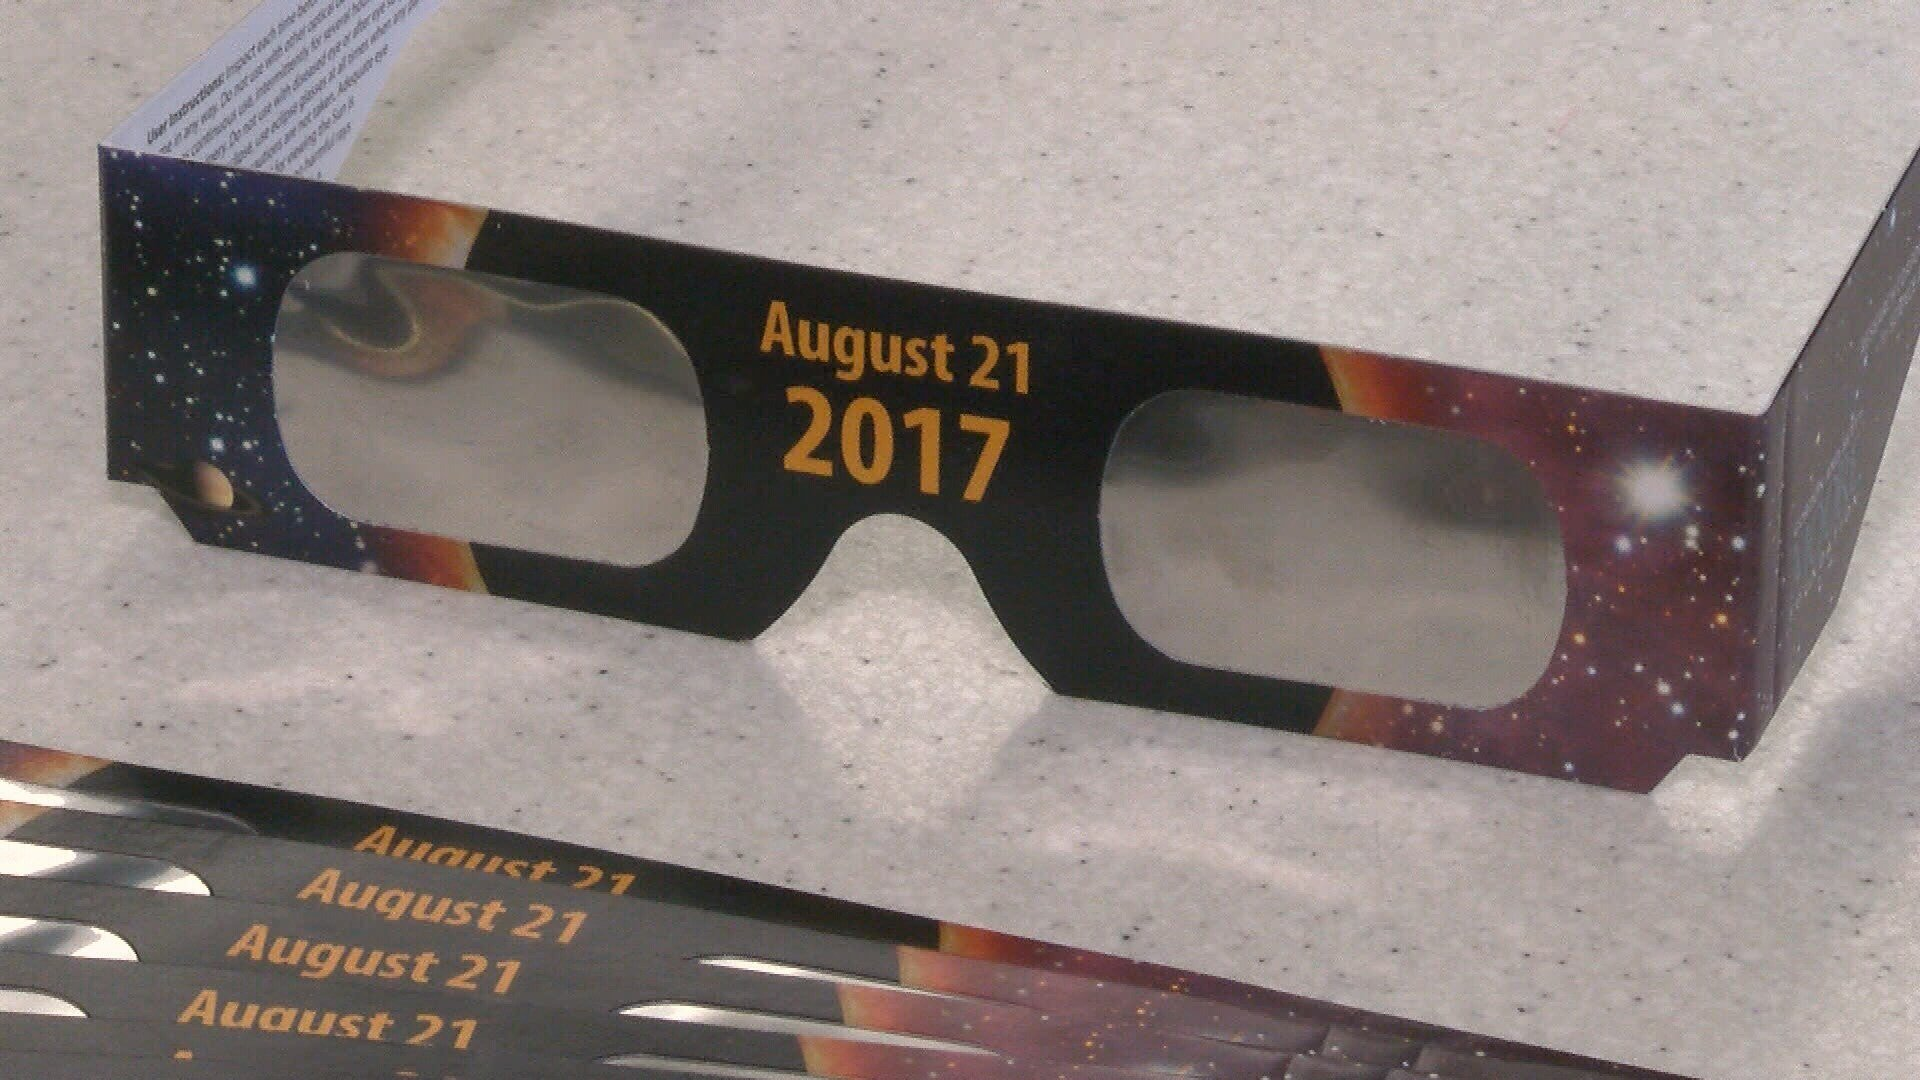 Proper eye protection needed for viewing the eclipse